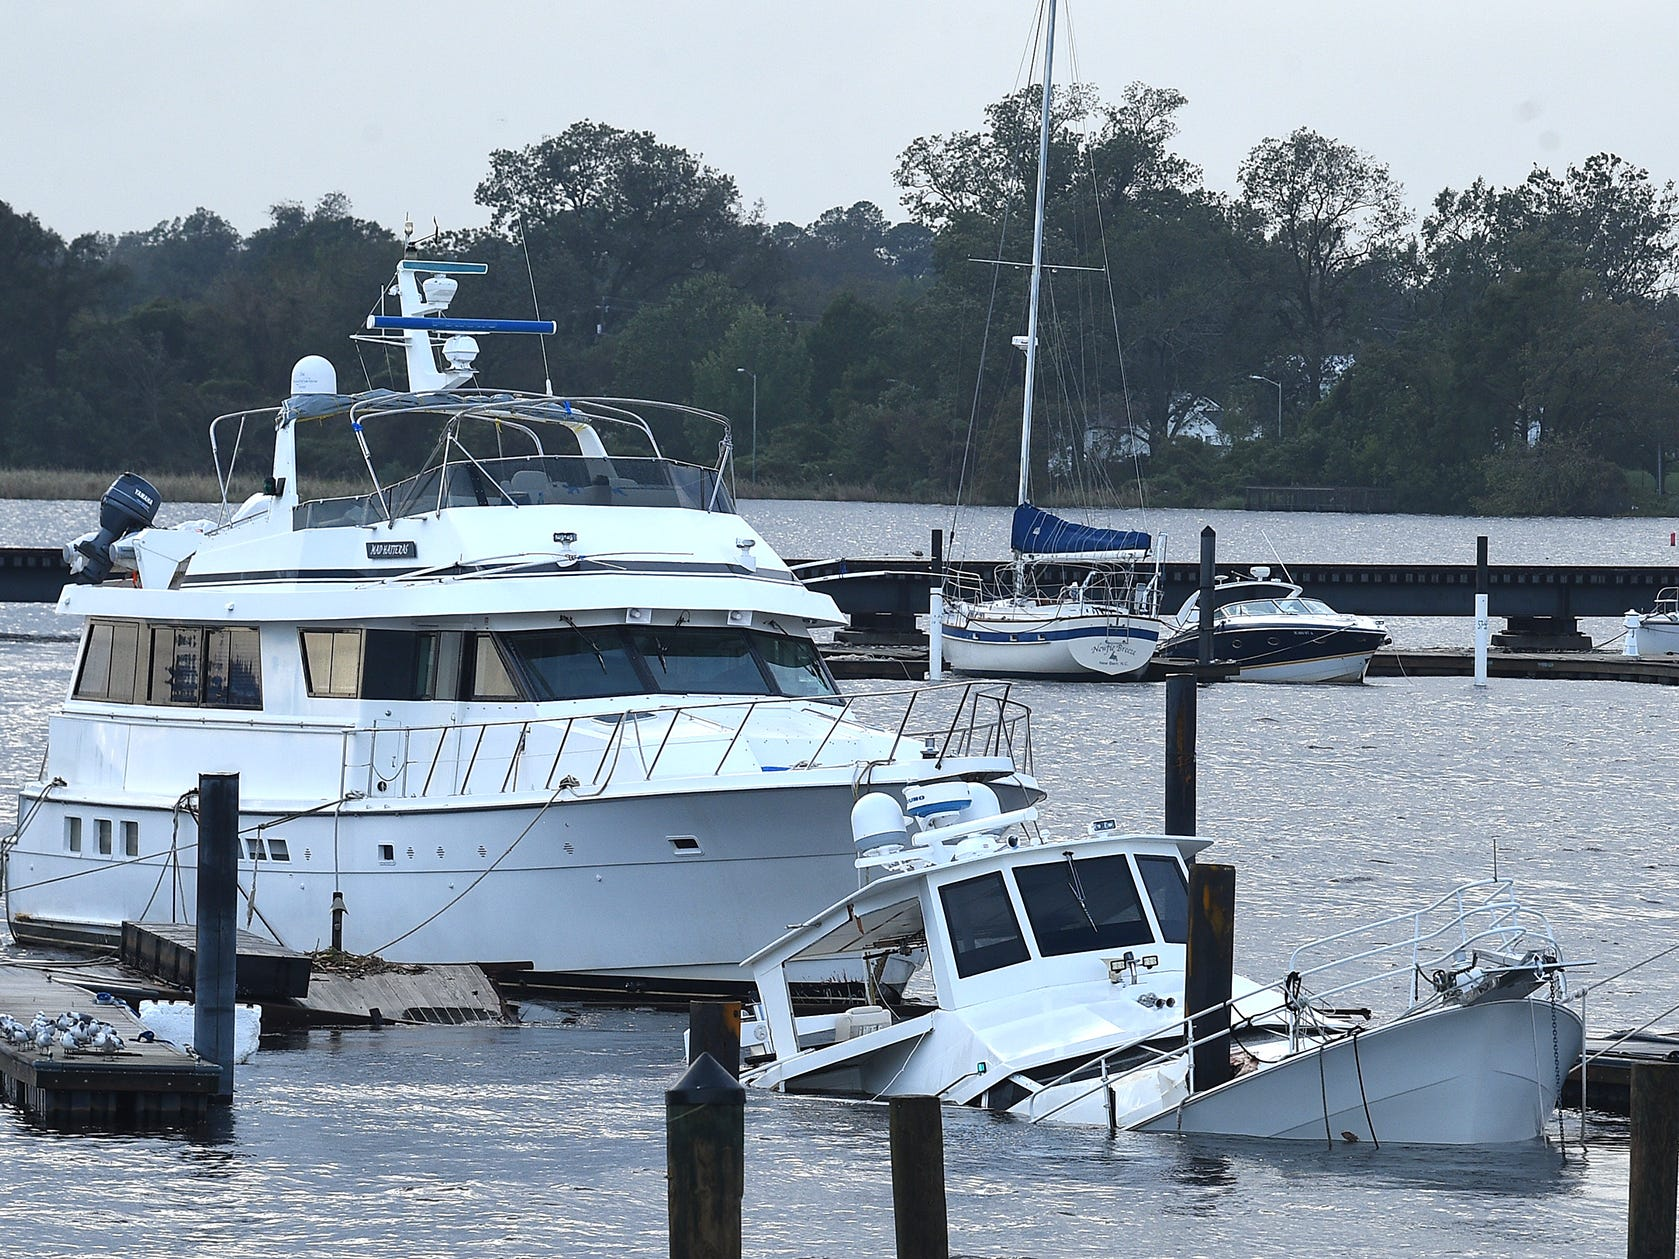 Damaged boats in a marina in New Bern, N.C. on Sept. 16, 2018.